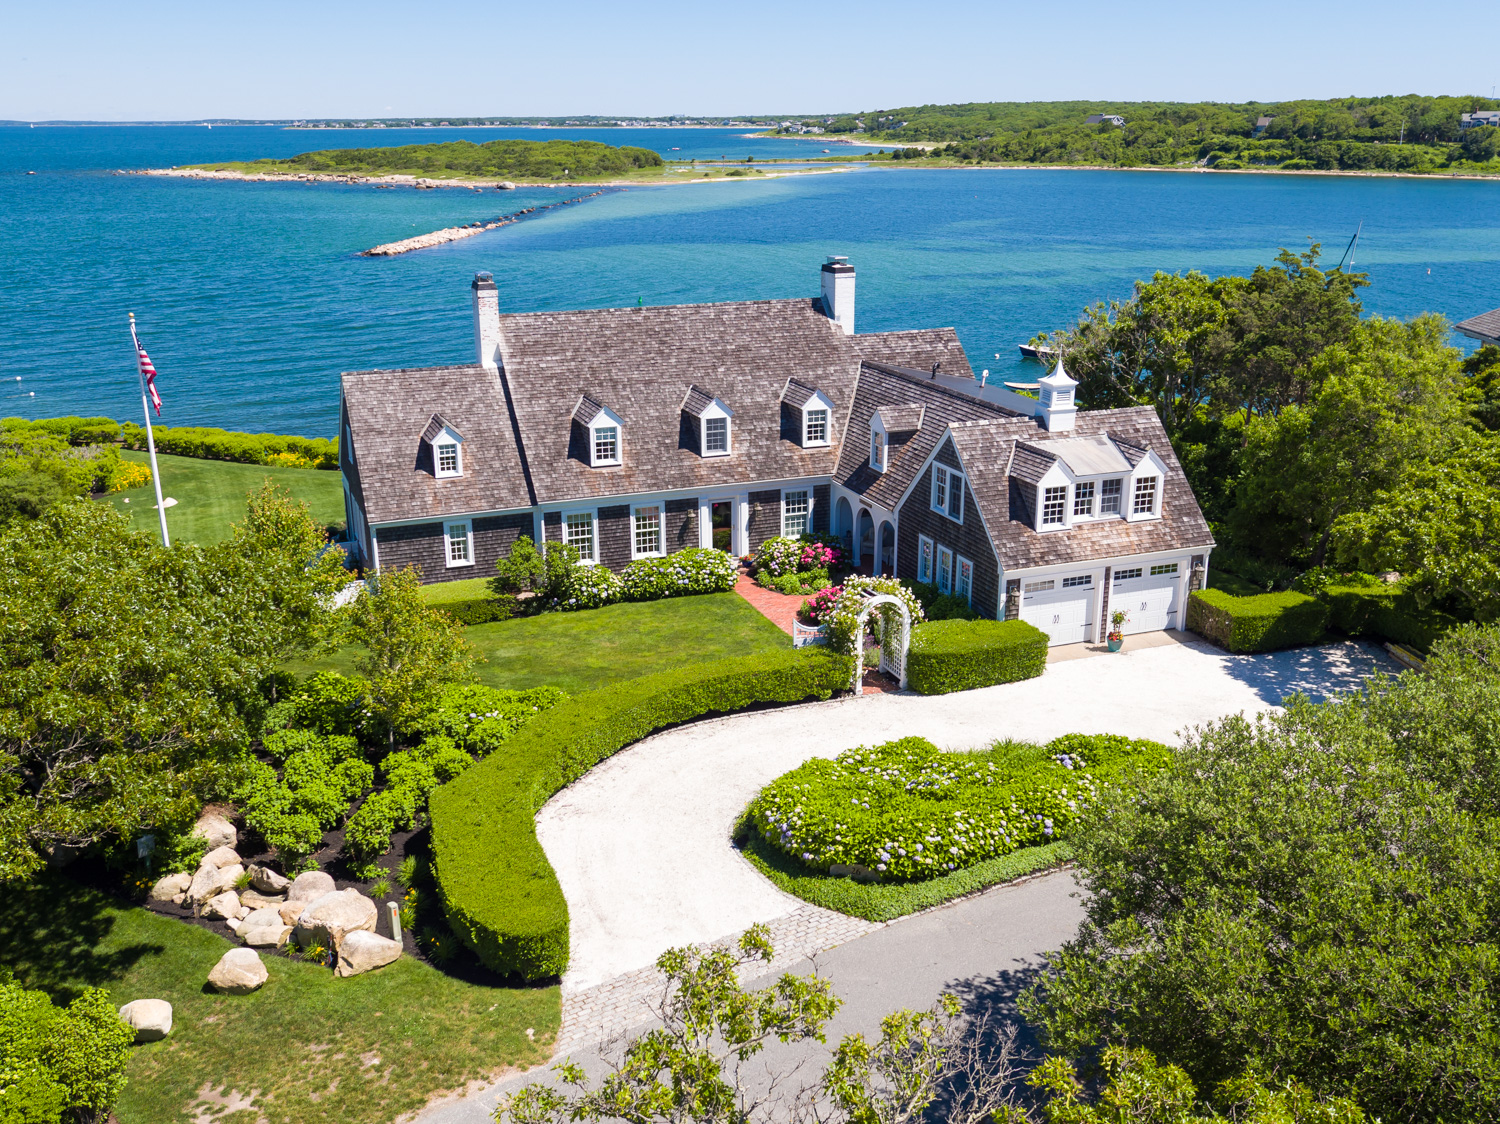 Cape cod boston coastal ma luxury waterfront homes for Cape cod beach homes for sale